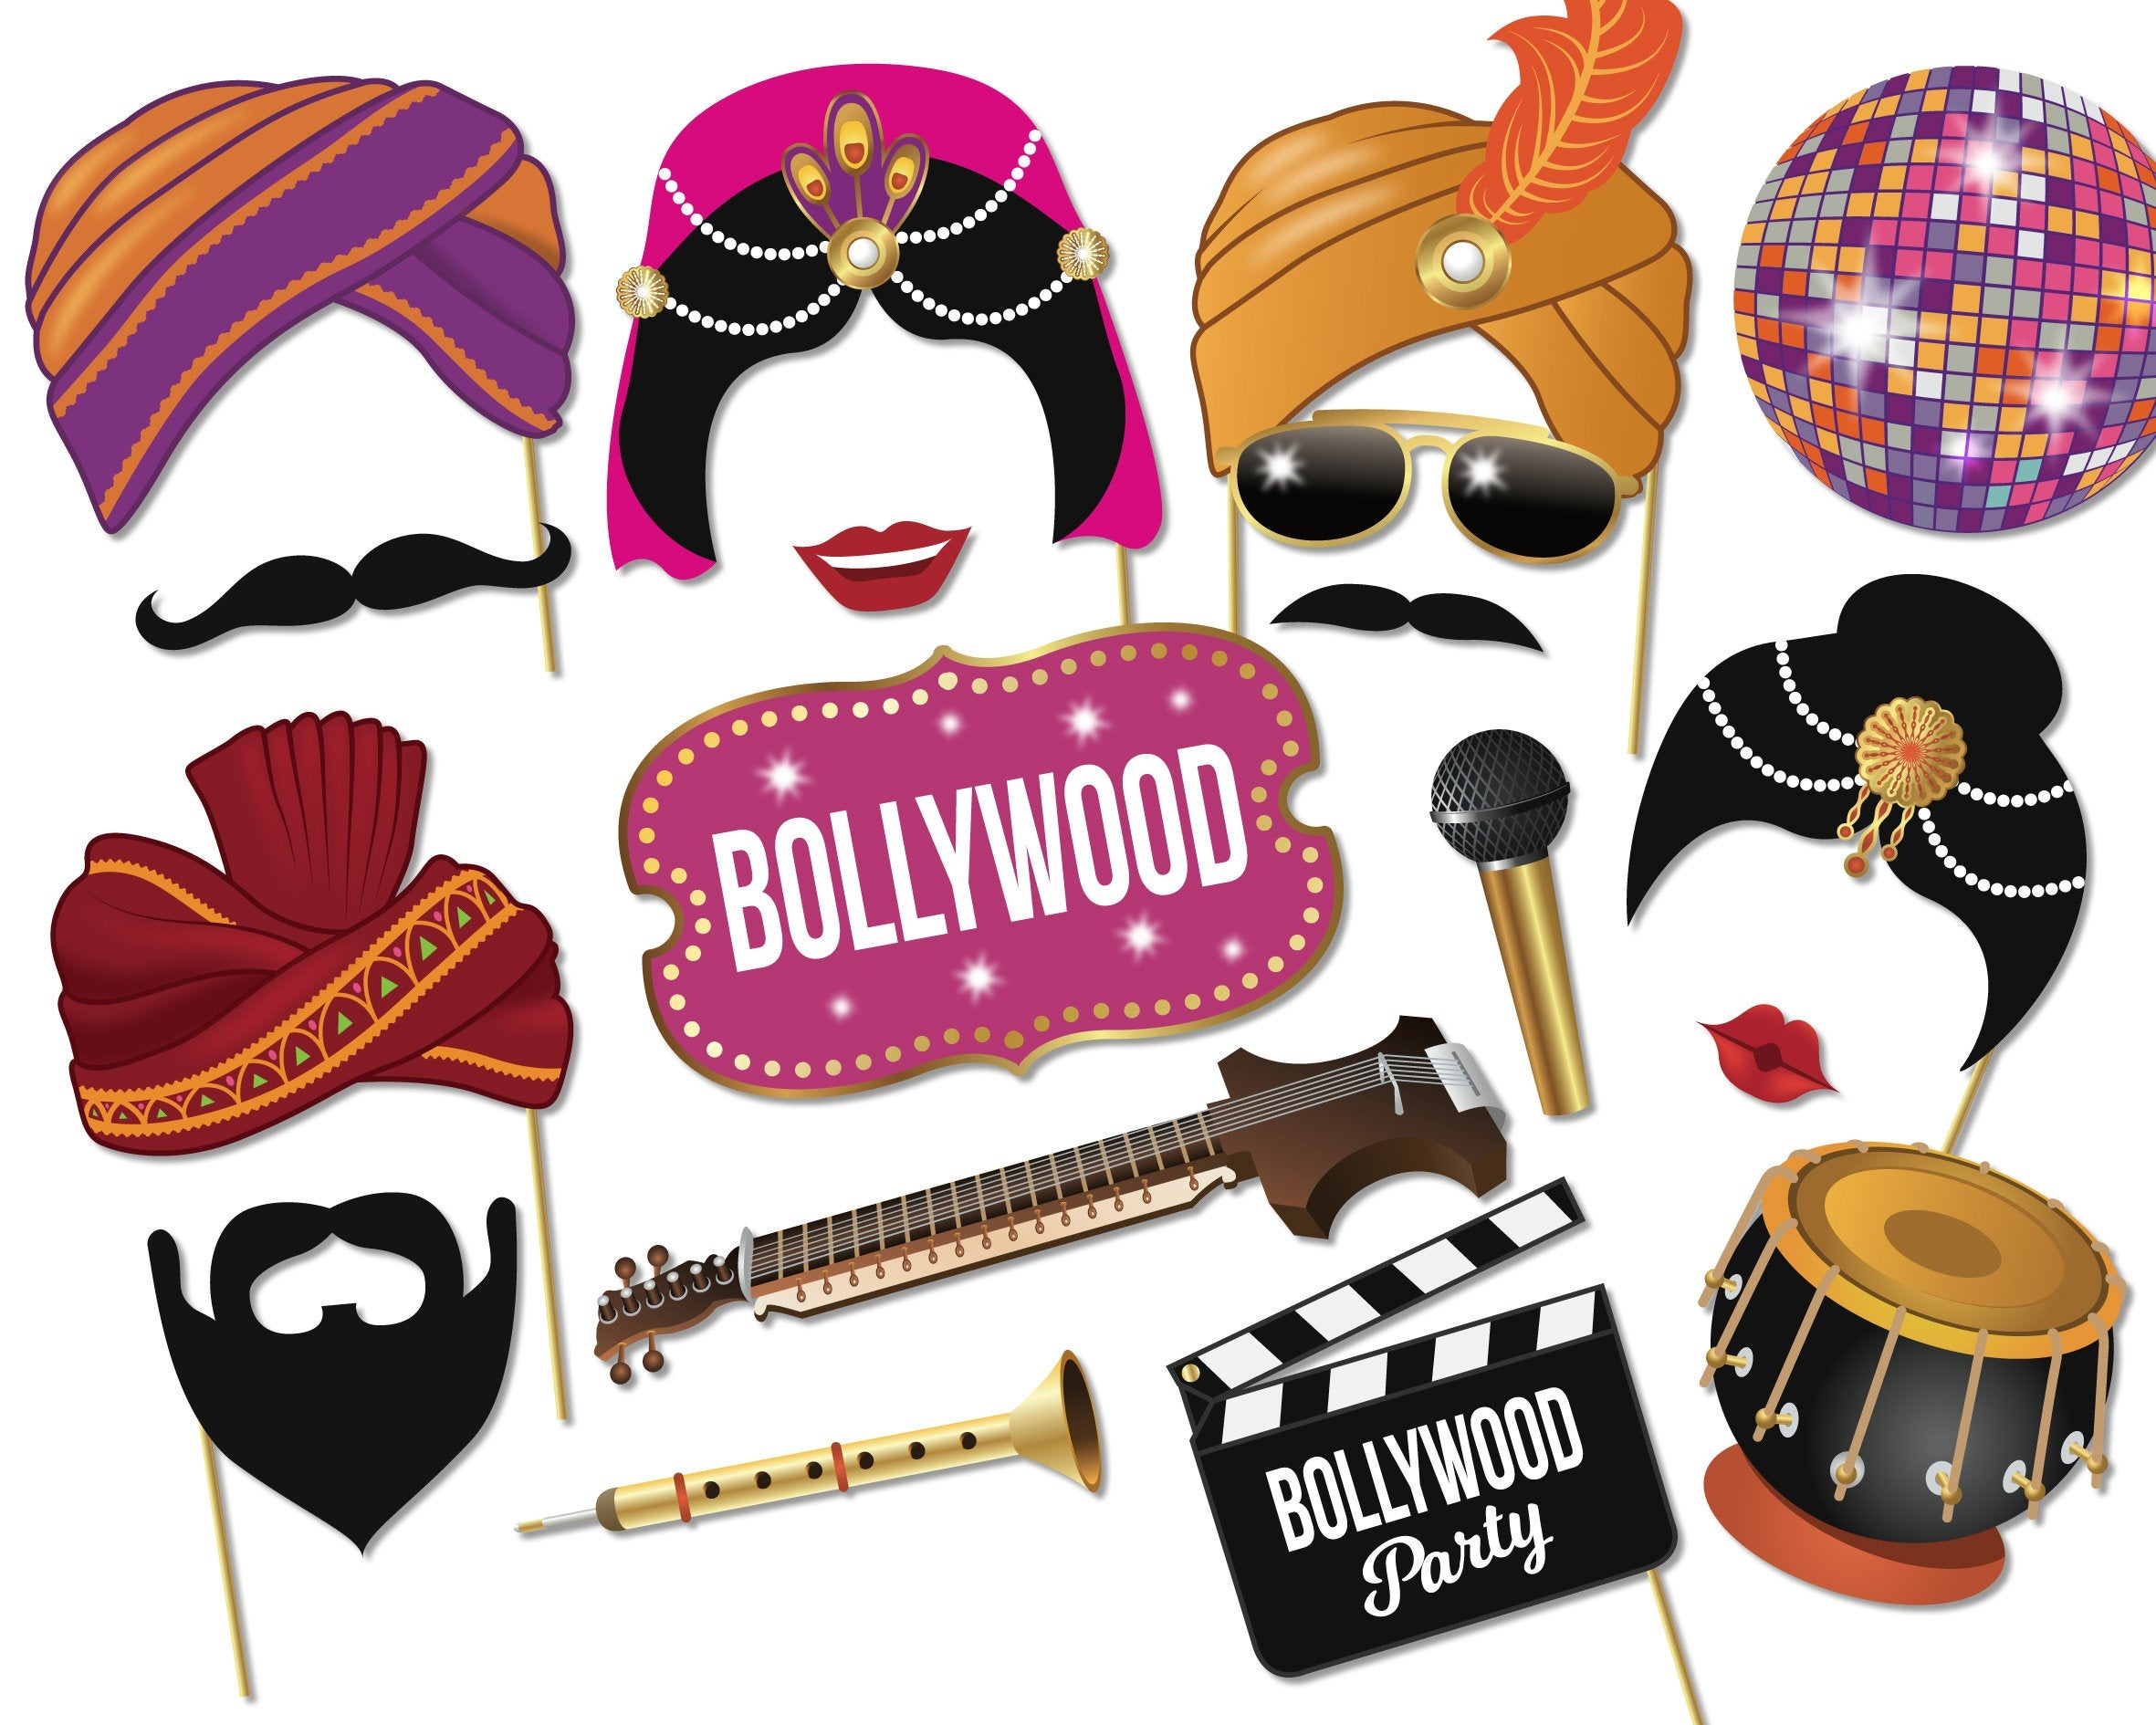 Bollywood Party Printable Photo Booth Props Bollywood | Etsy - Free Printable 70's Photo Booth Props